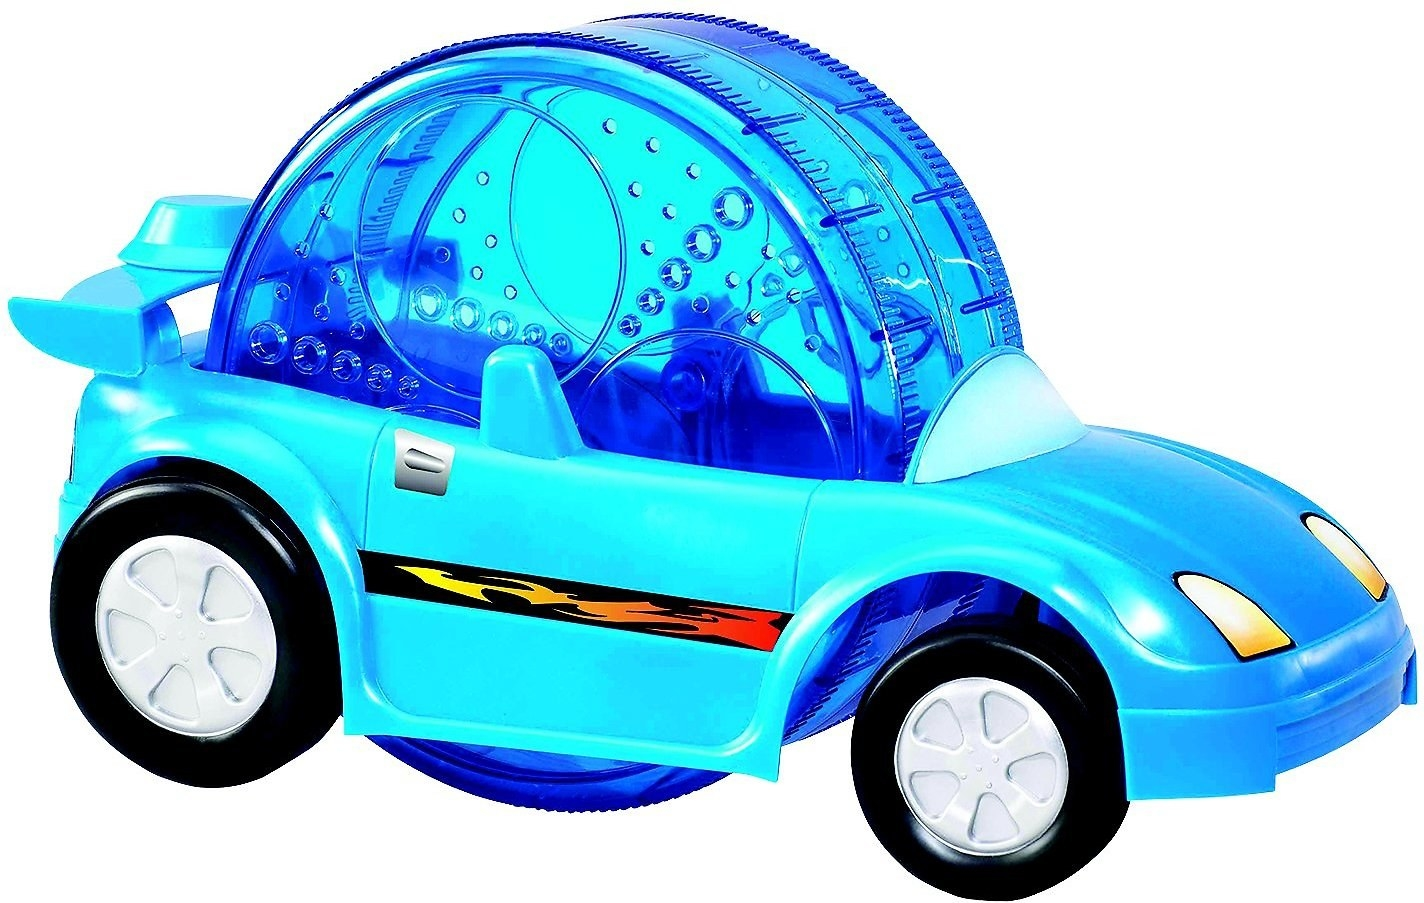 A toy car with a hamster wheel placed inside of it